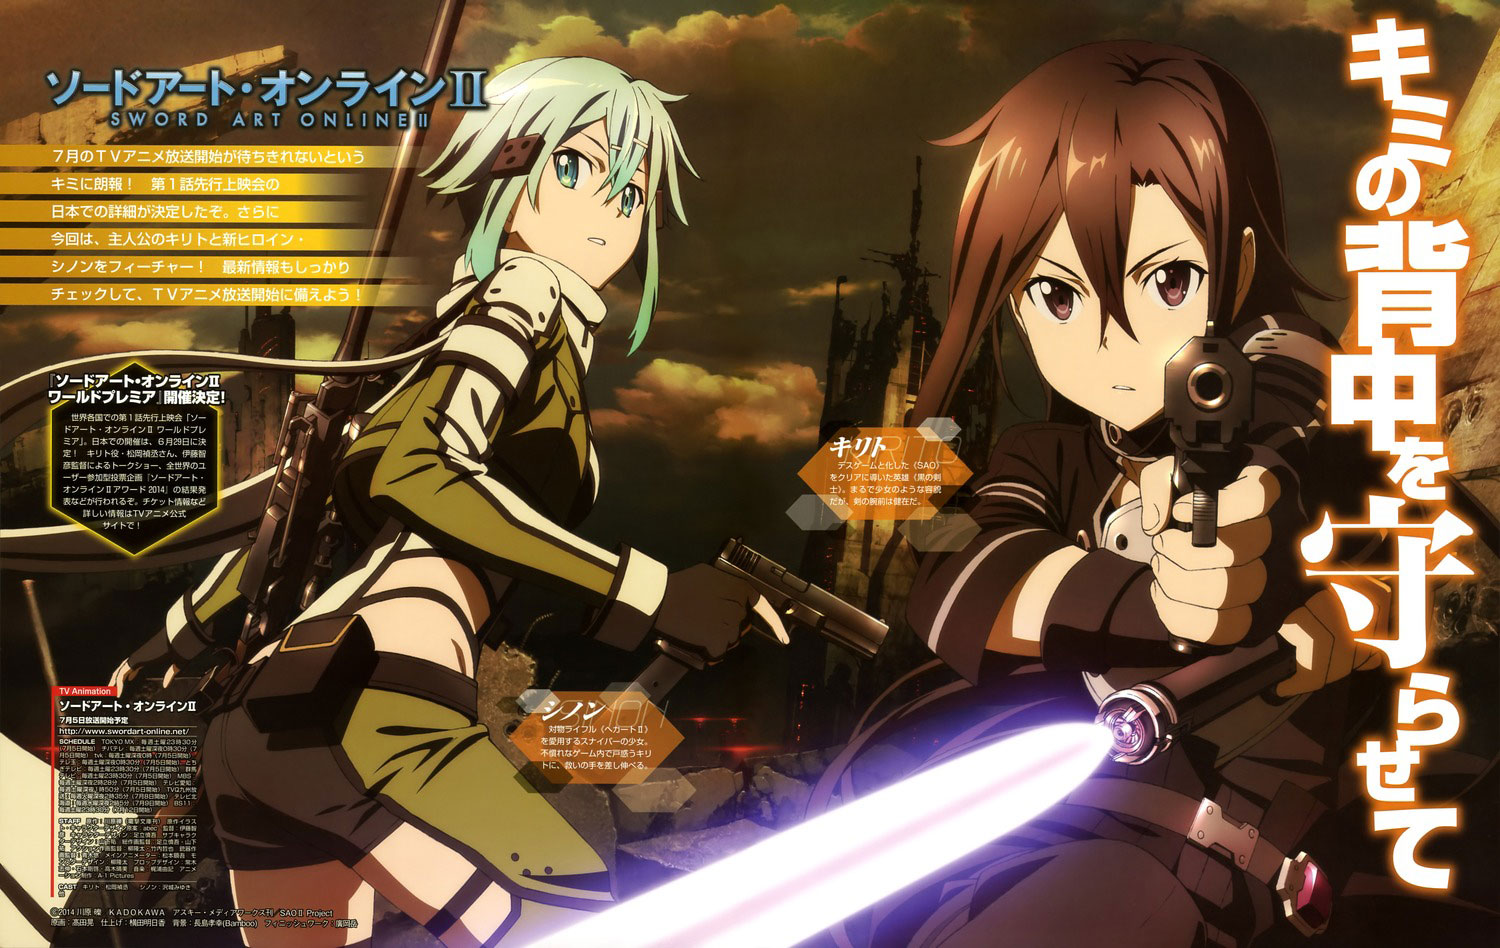 Sword Art Online June Visuals 03